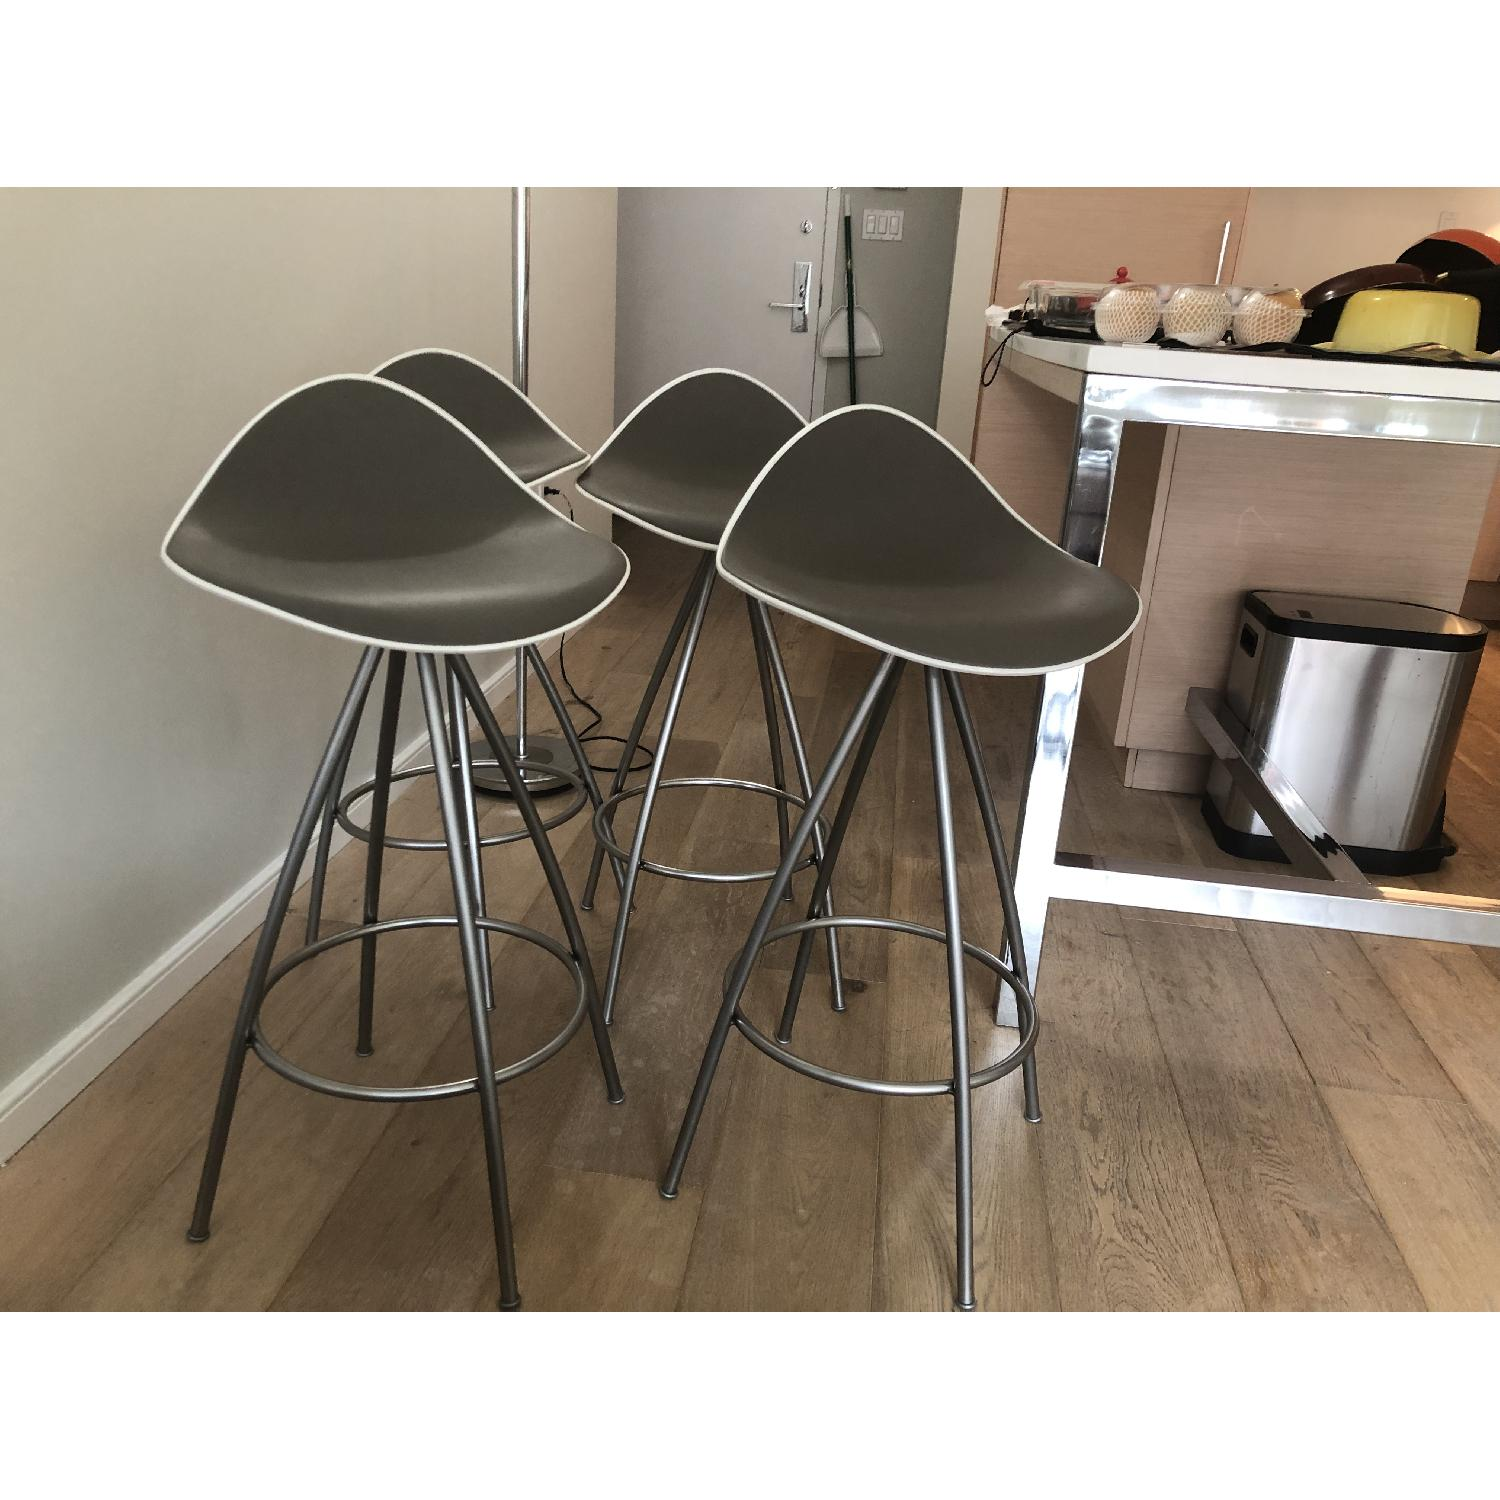 Design Within Reach Onda Counter Stools - image-2